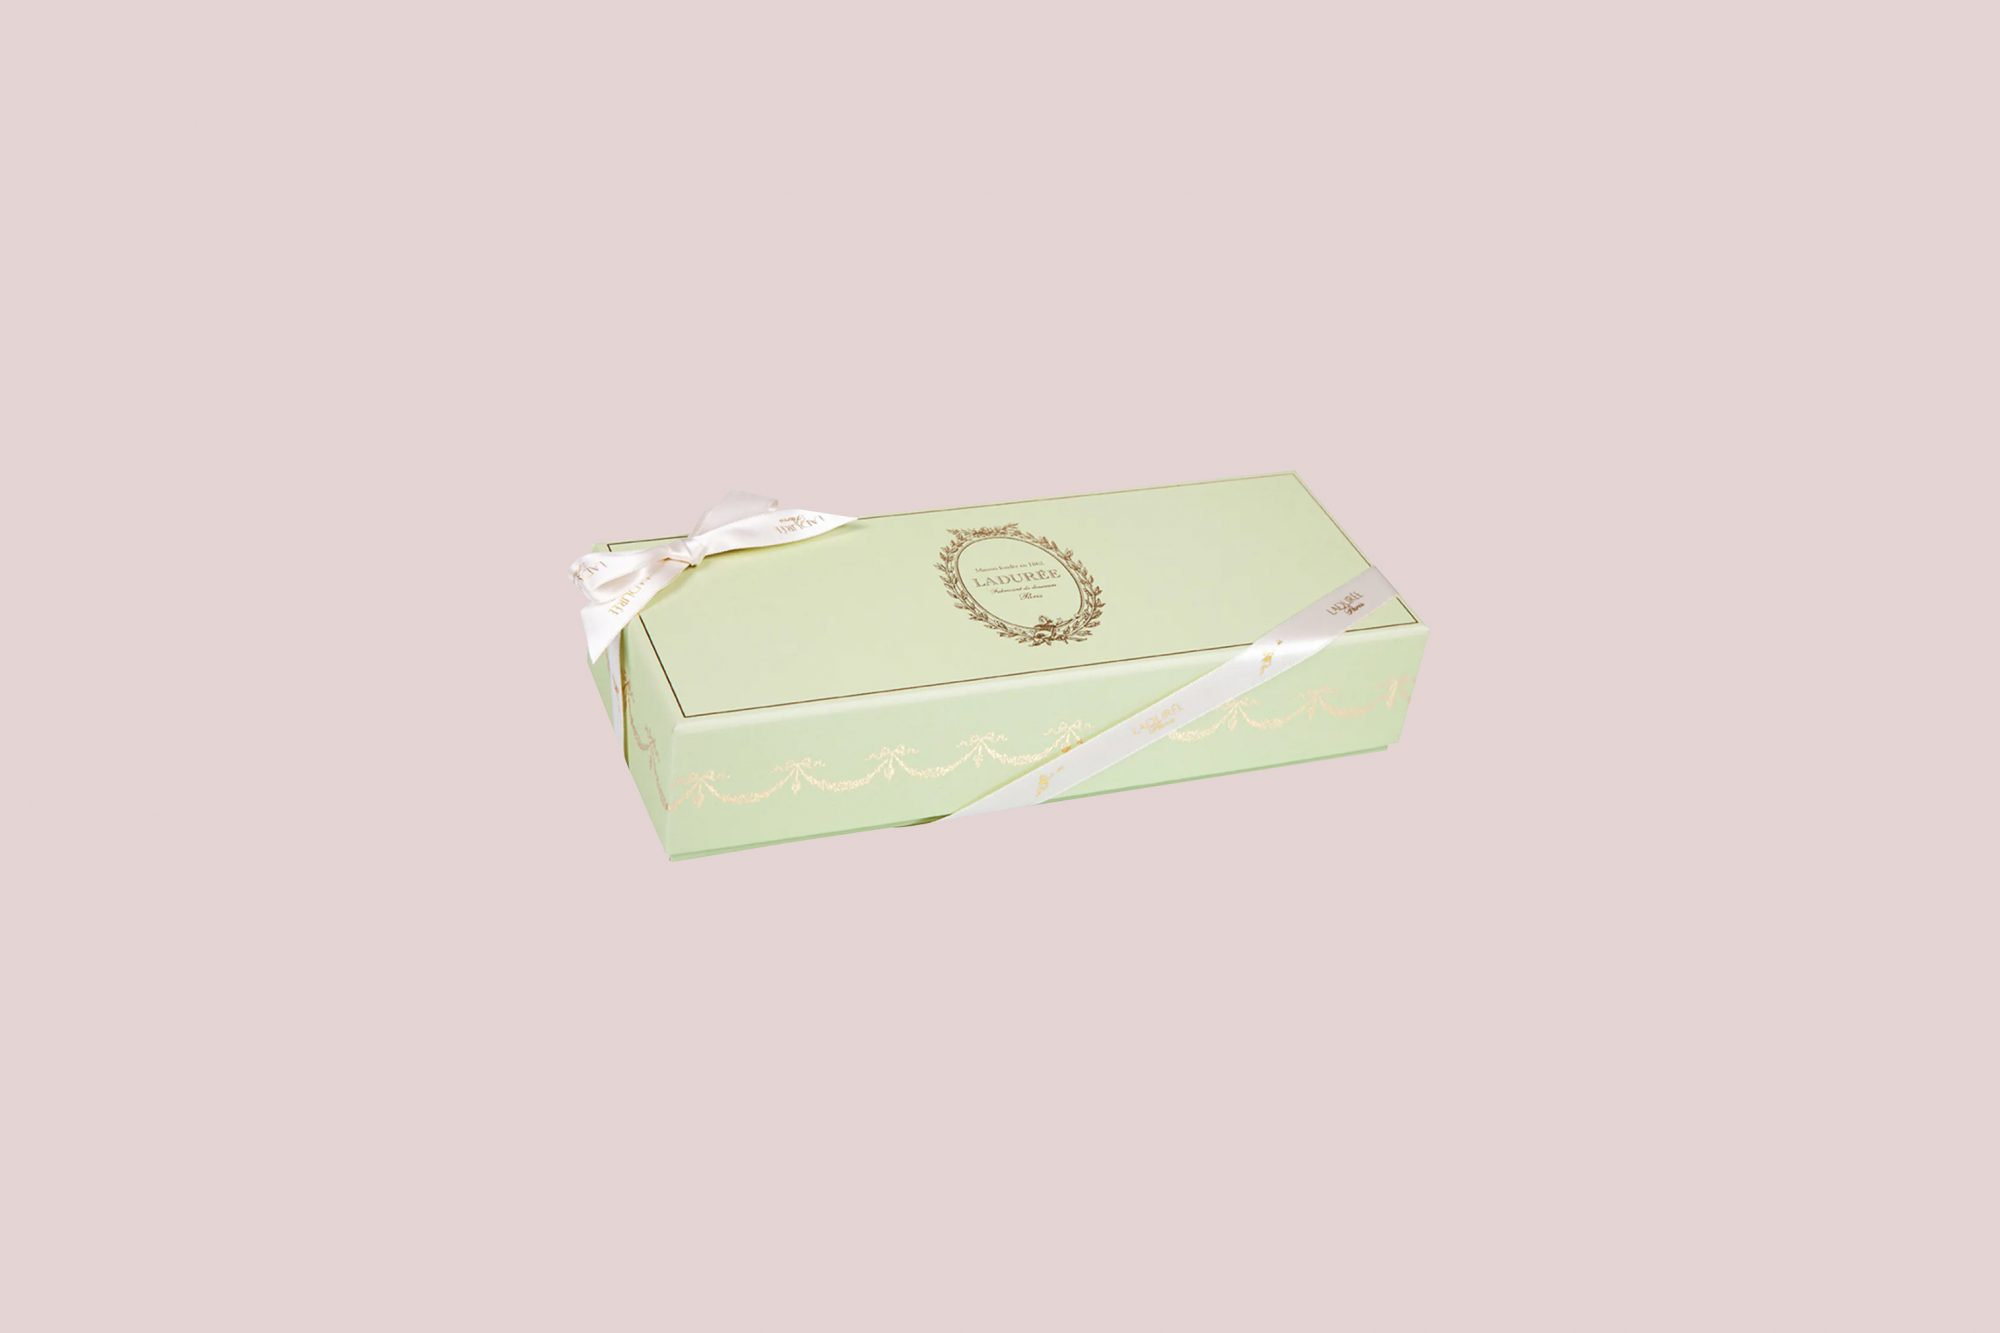 Ladurée Prestige Green Box of Macarons